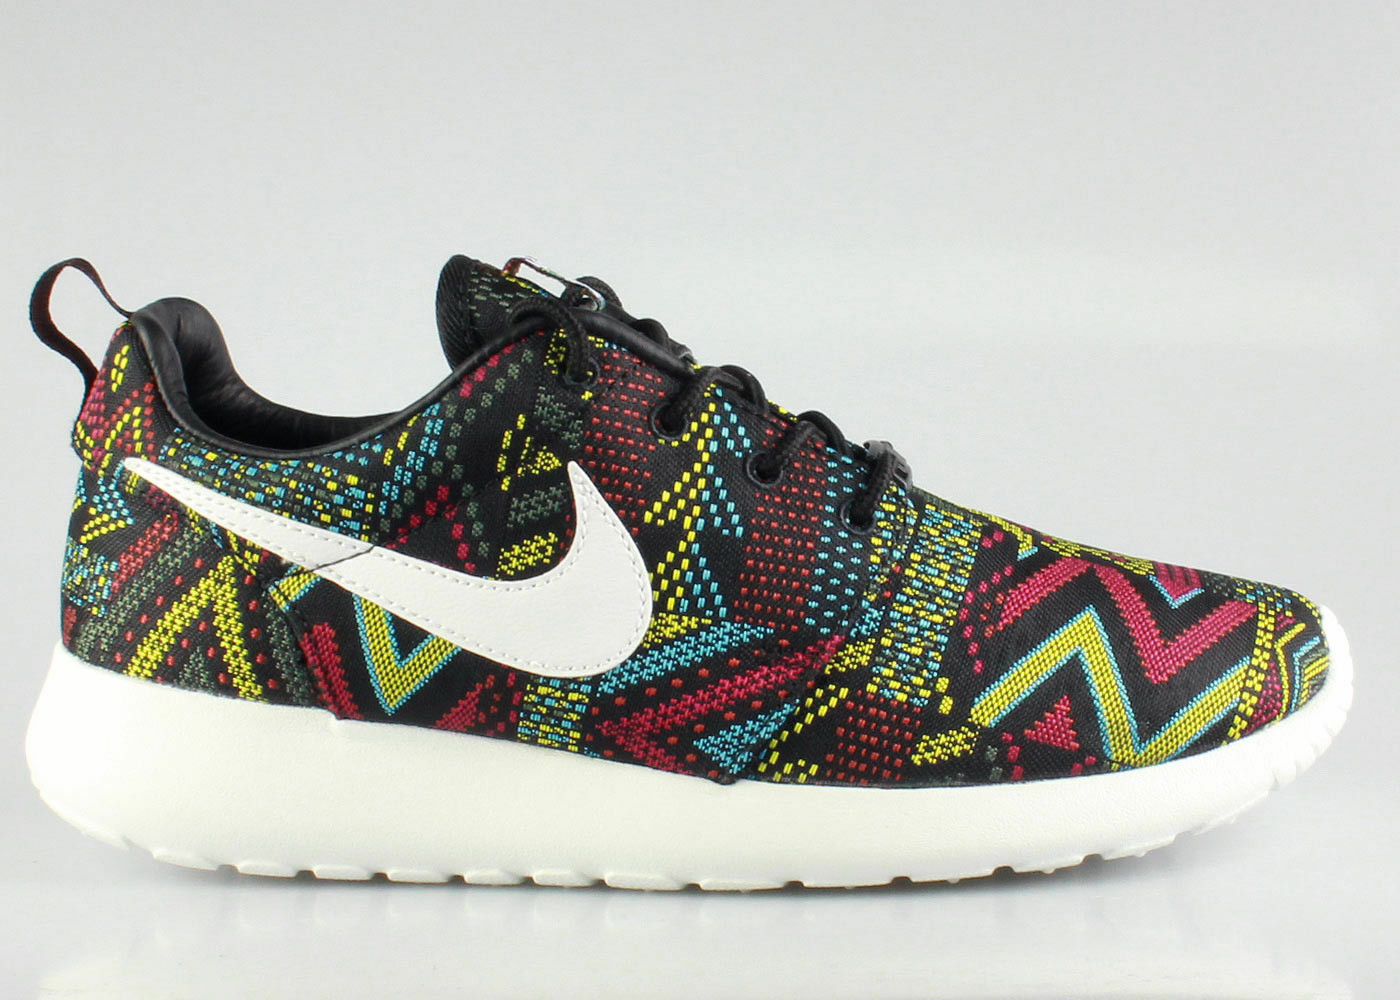 Nike Women's Roshe One JCRD BHM QS Black History Month Collection [836230-001]